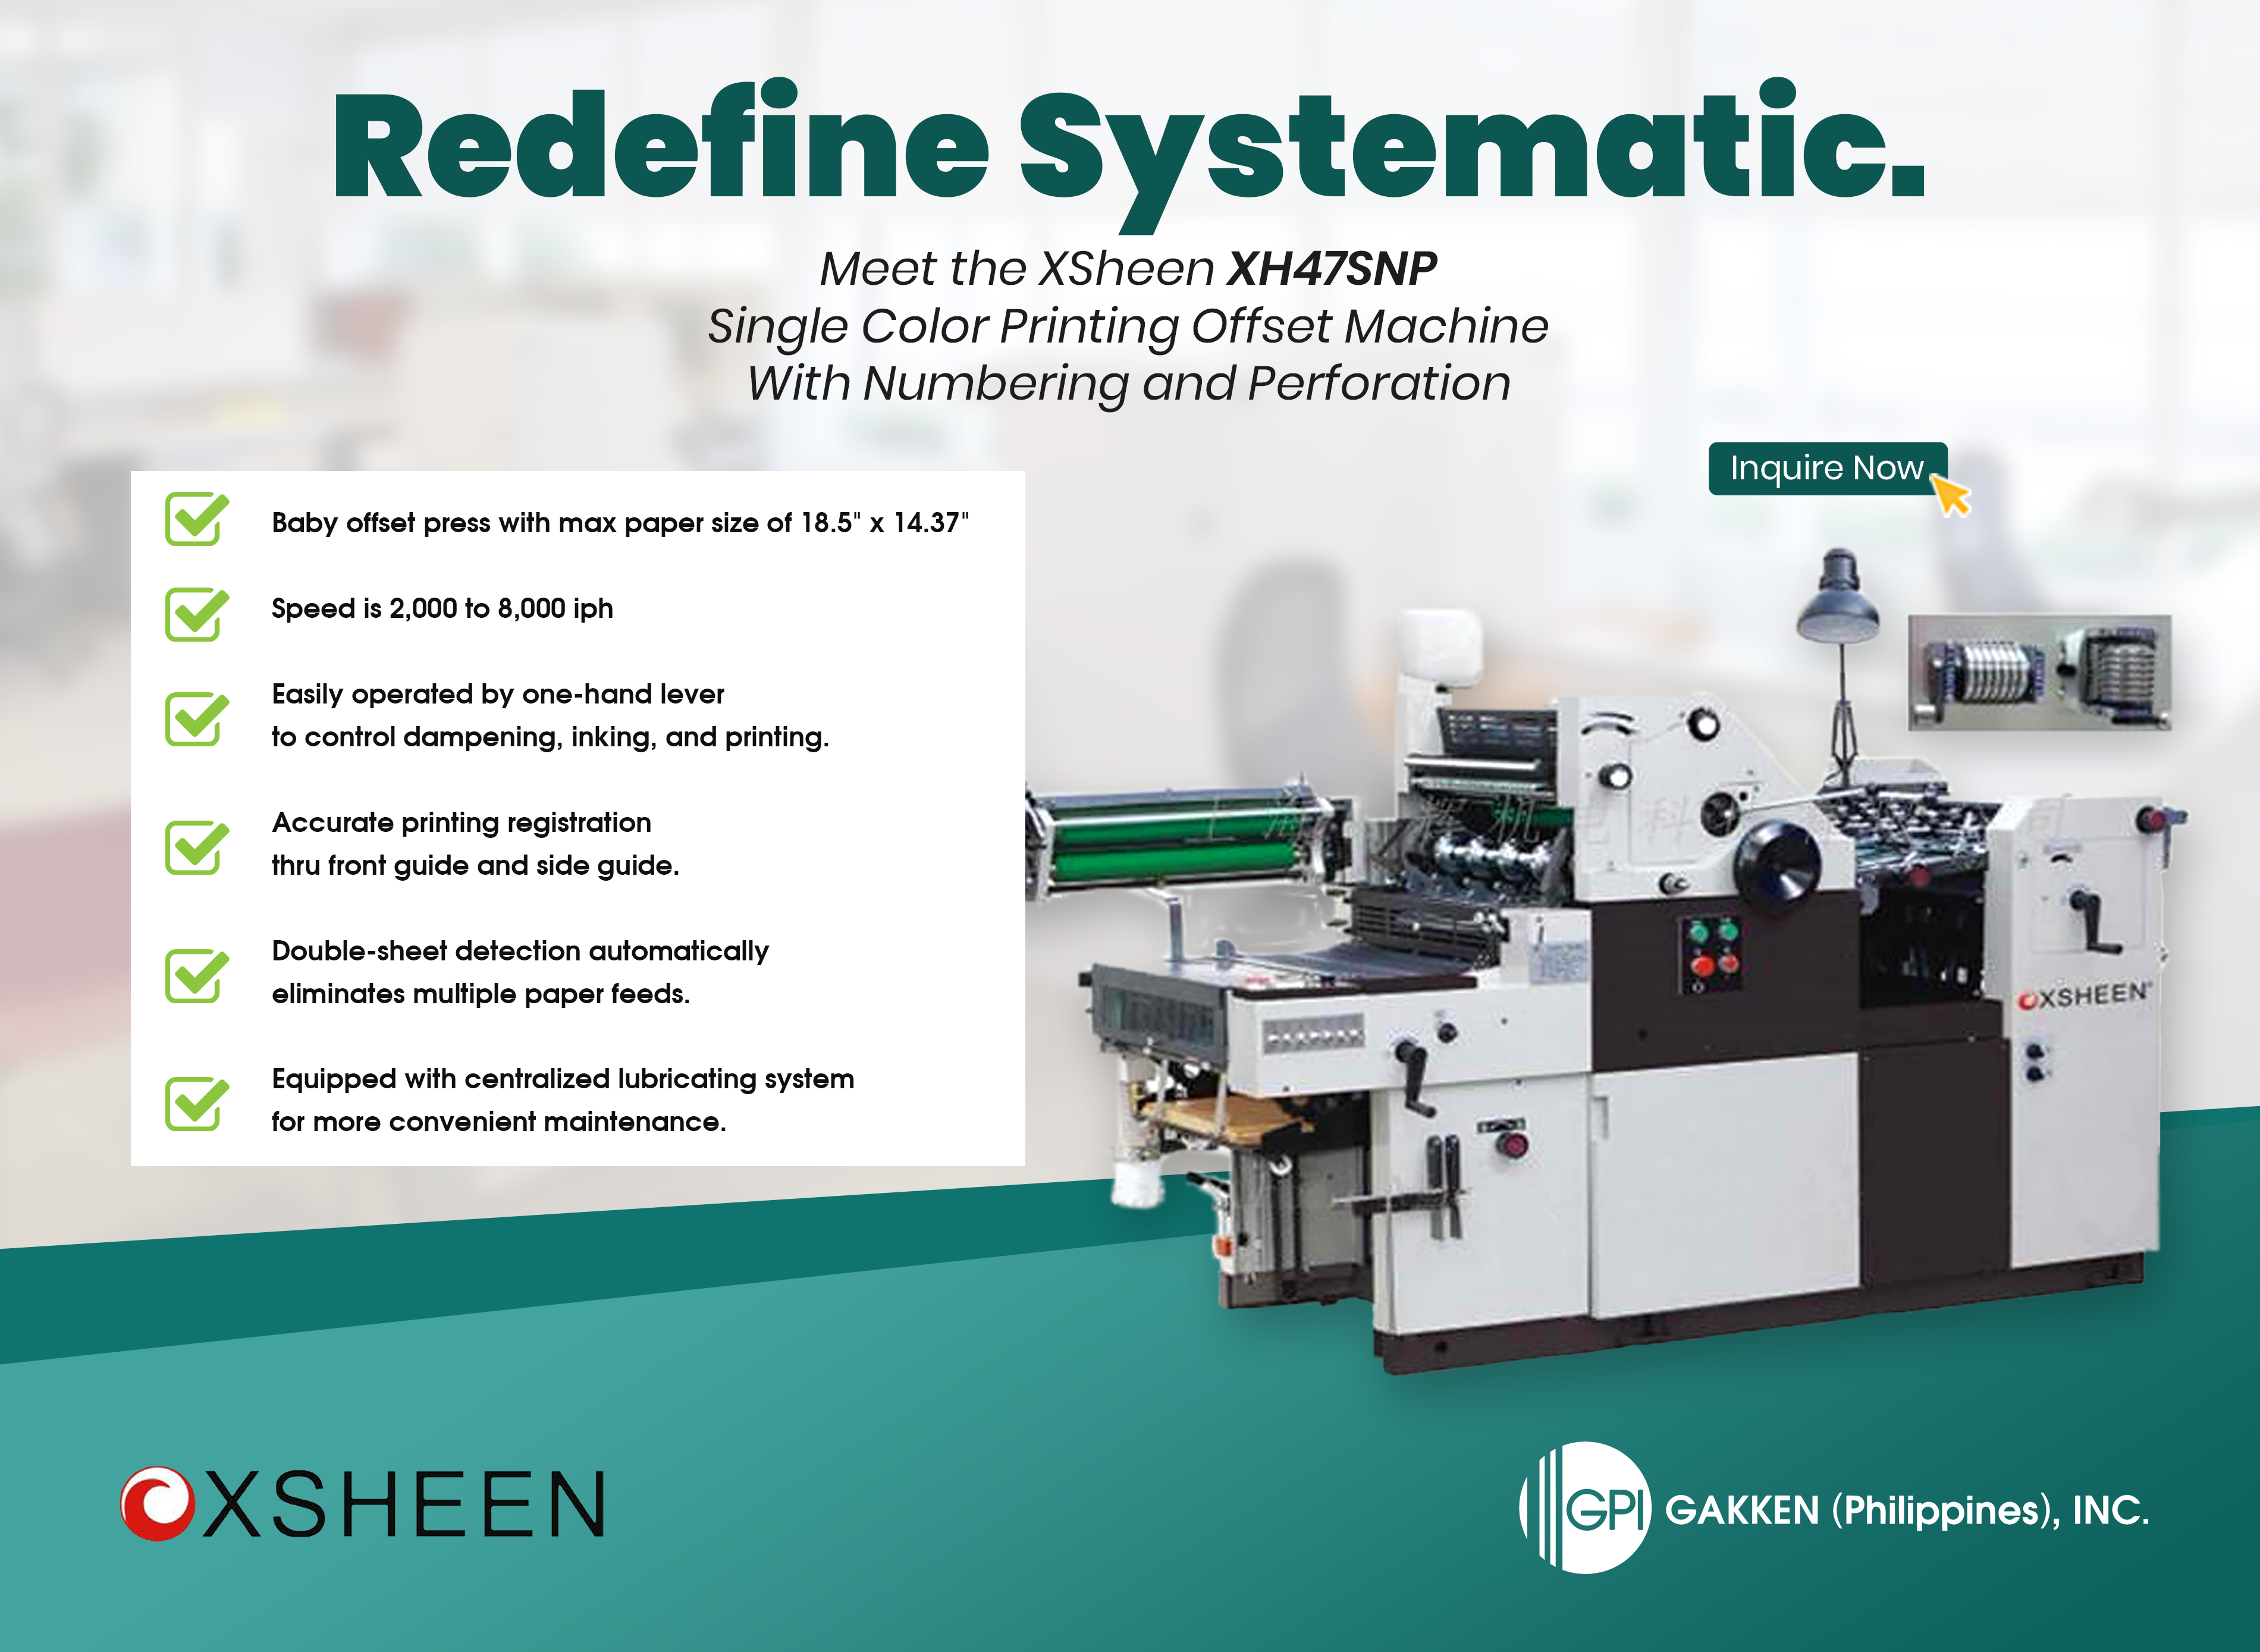 Meet XSheen XH47SNP – The Single Color Baby Offset Printing Machine with Numbering and Perforation